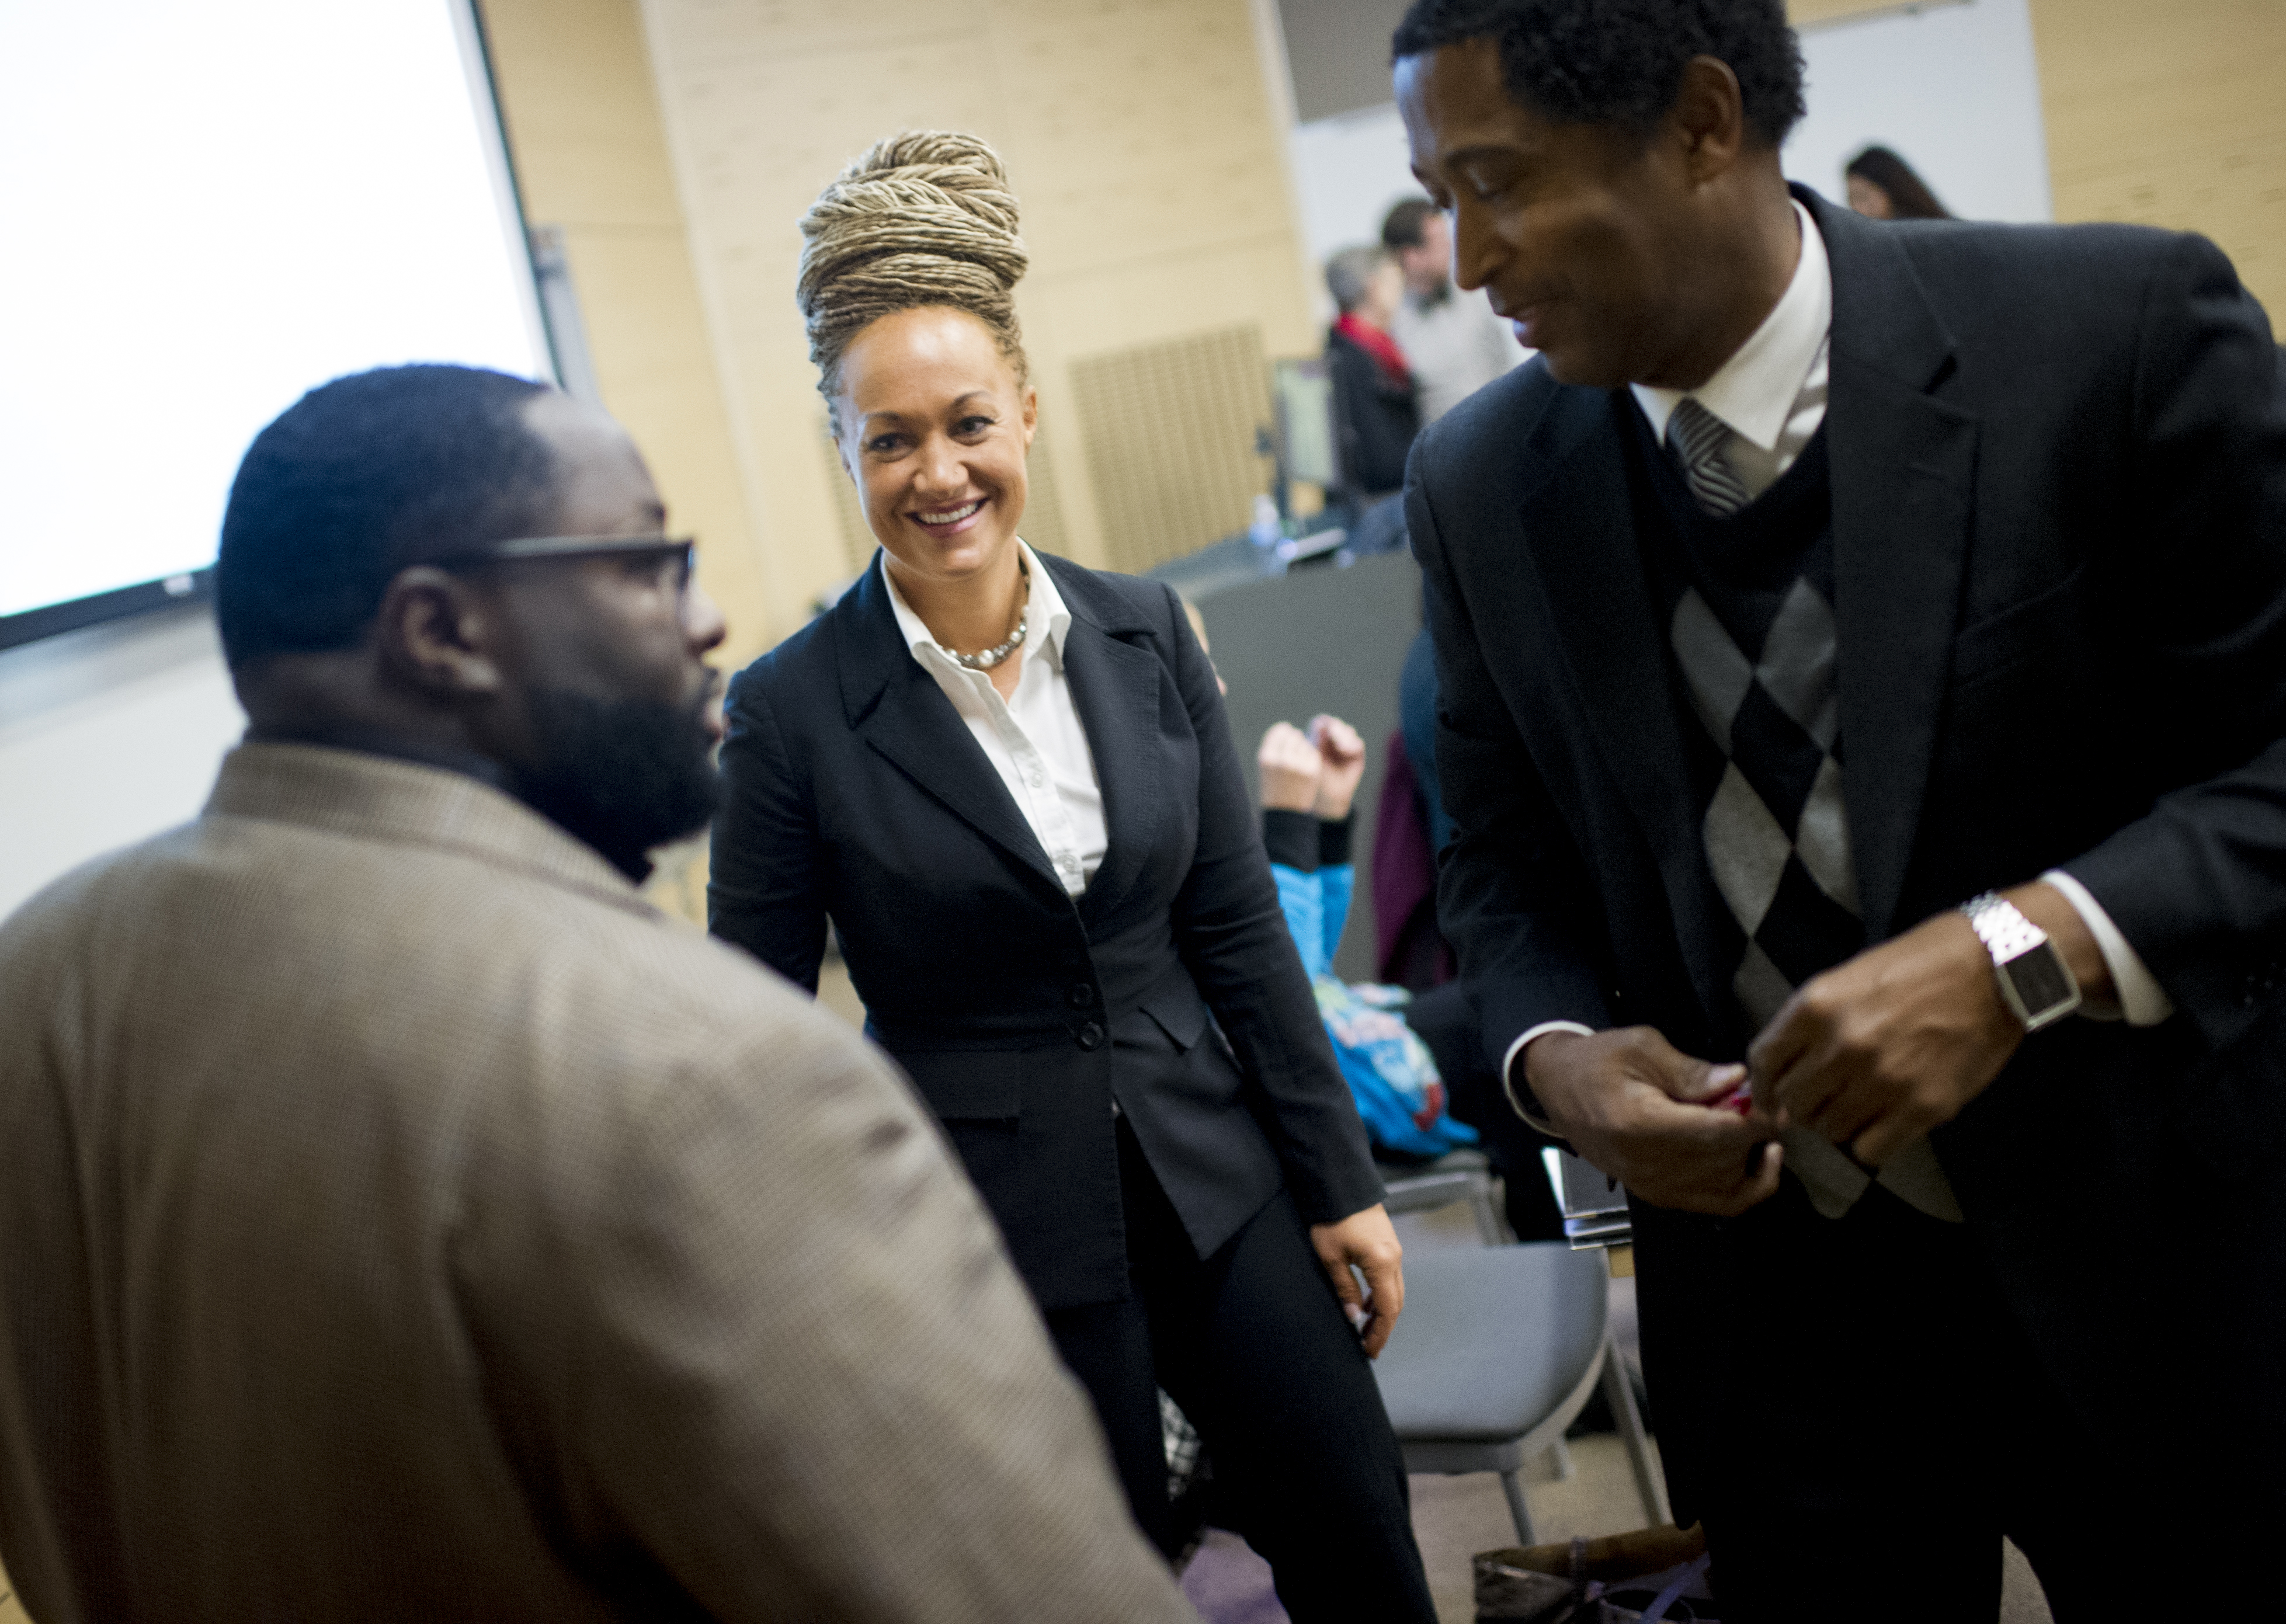 Rachel Dolezal before the start of a Black Lives Matter Teach-In on Public Safety and Criminal Justice  at EWU in Cheney, Wash., on Jan. 16, 2015